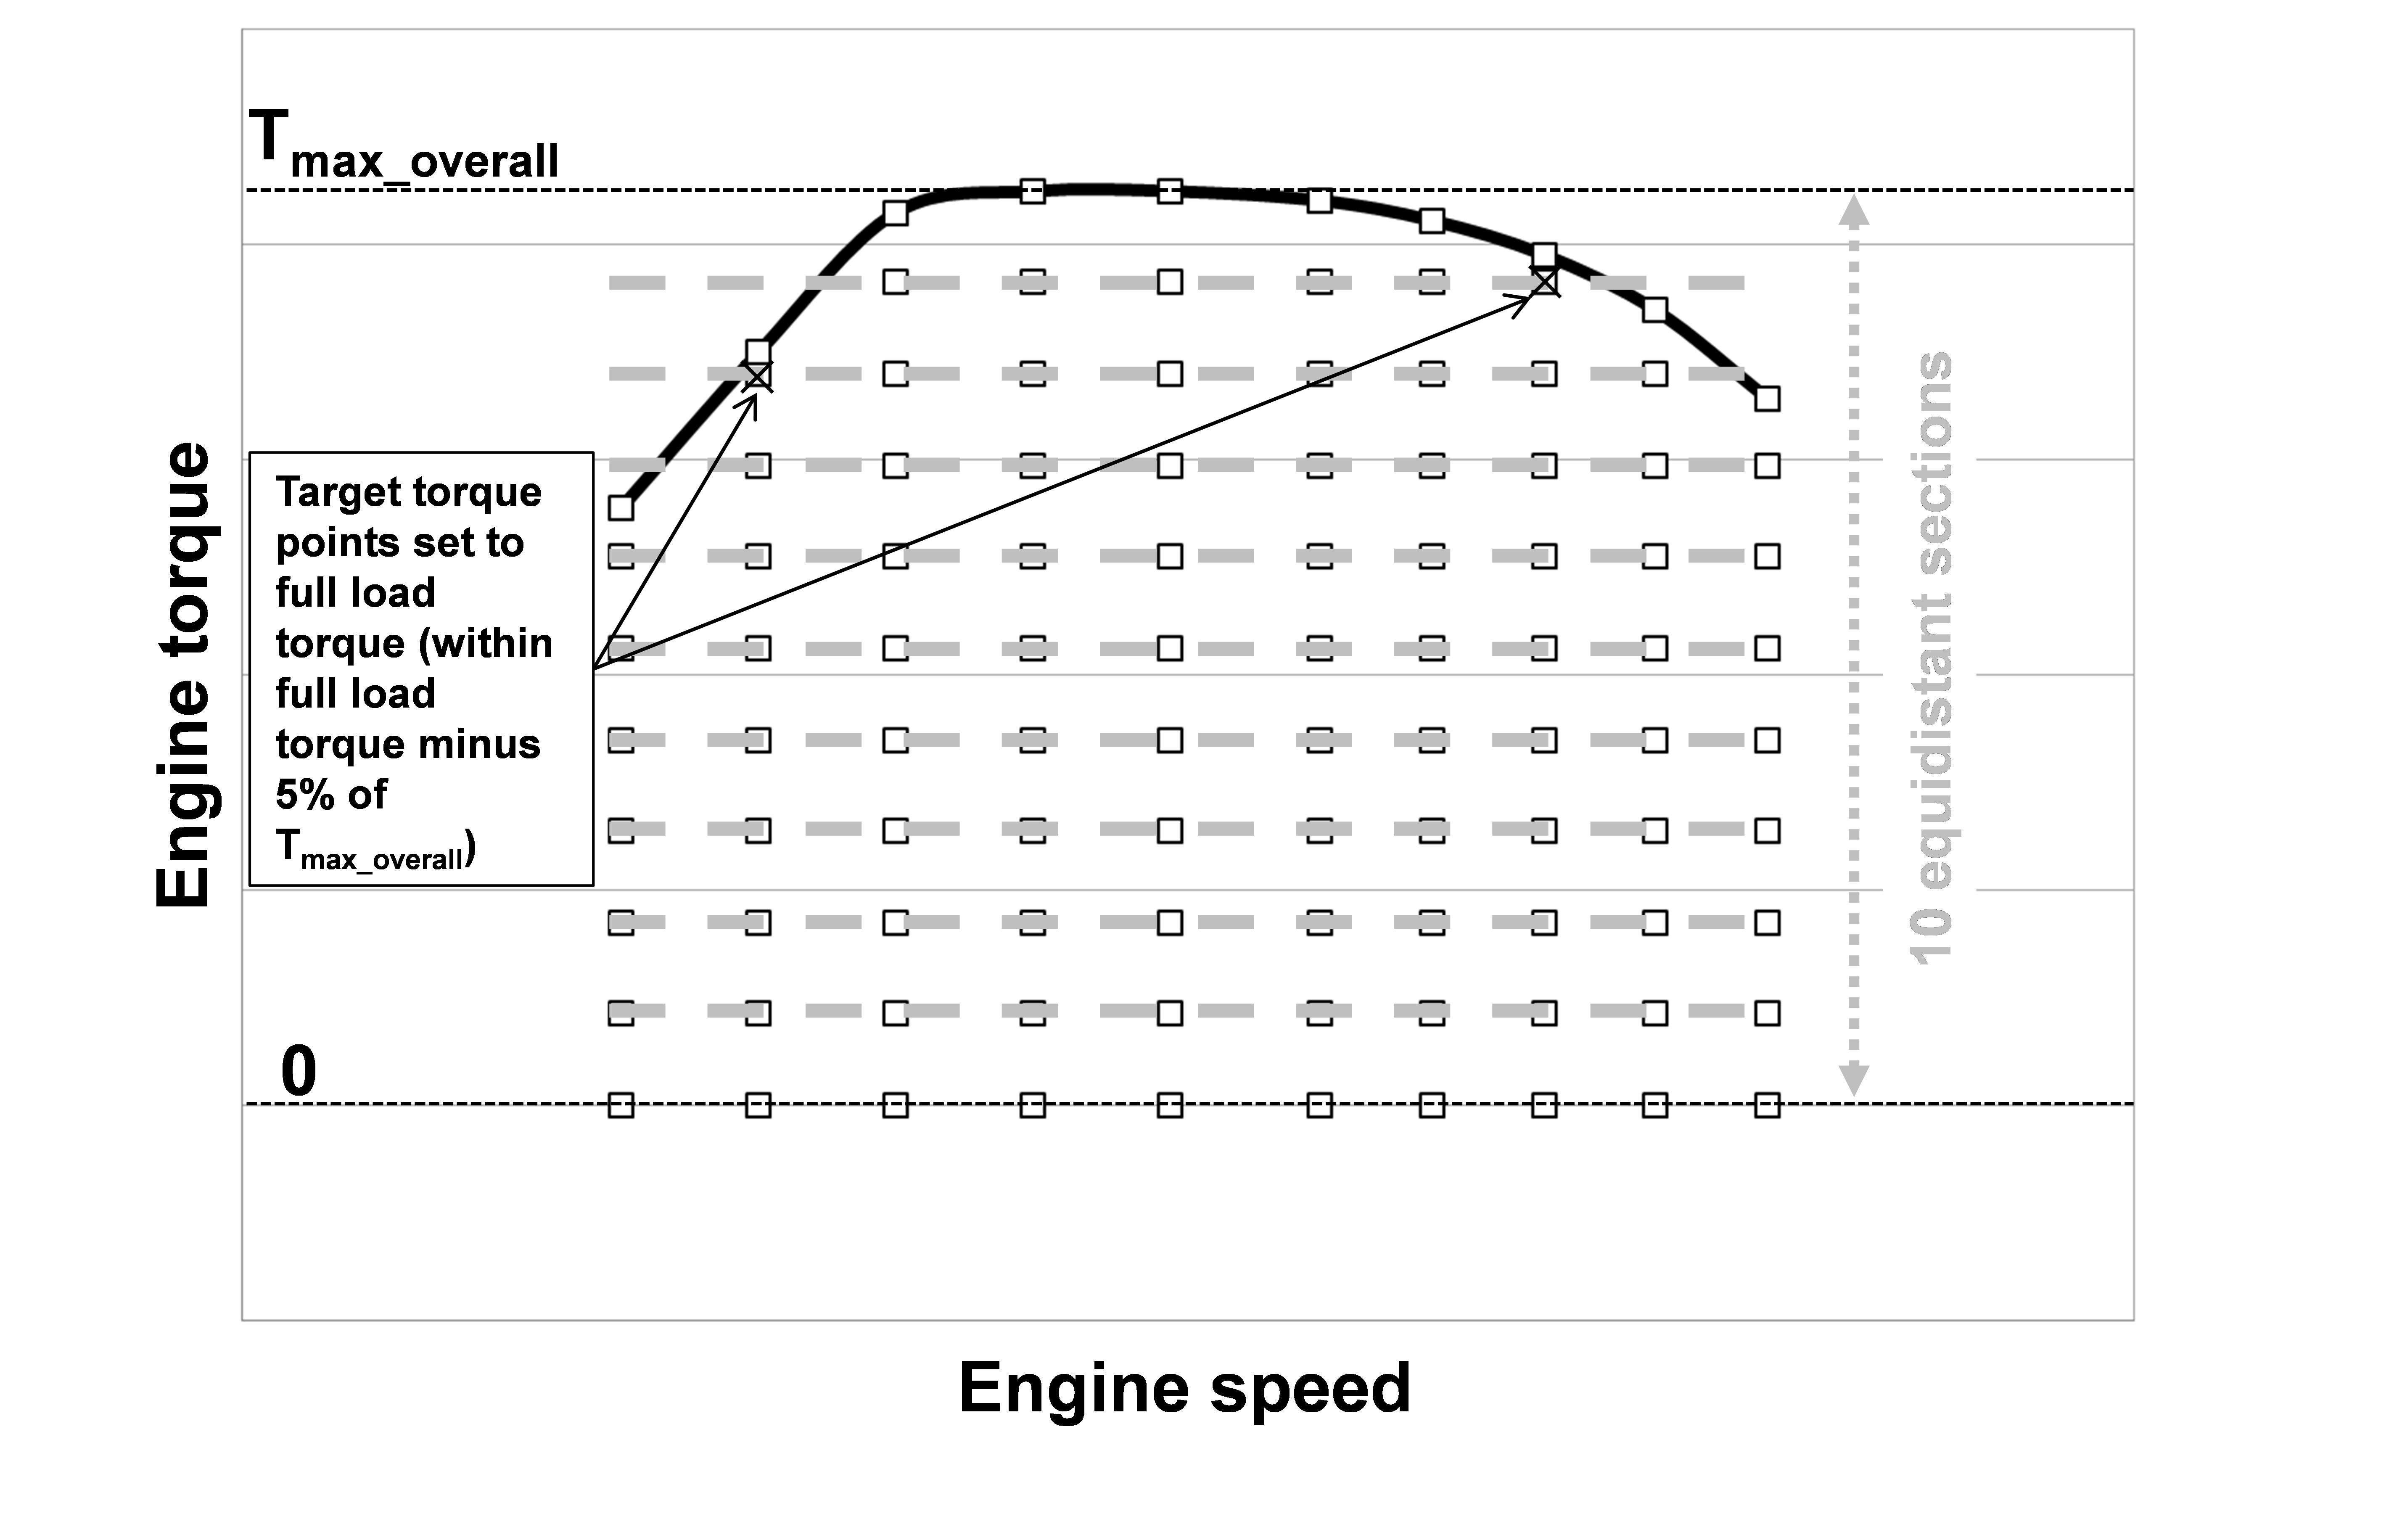 Car Engine Oil Flow Diagram 30 Lovely Engine Oil Temperature Range Chart Your Best Chart Of Car Engine Oil Flow Diagram